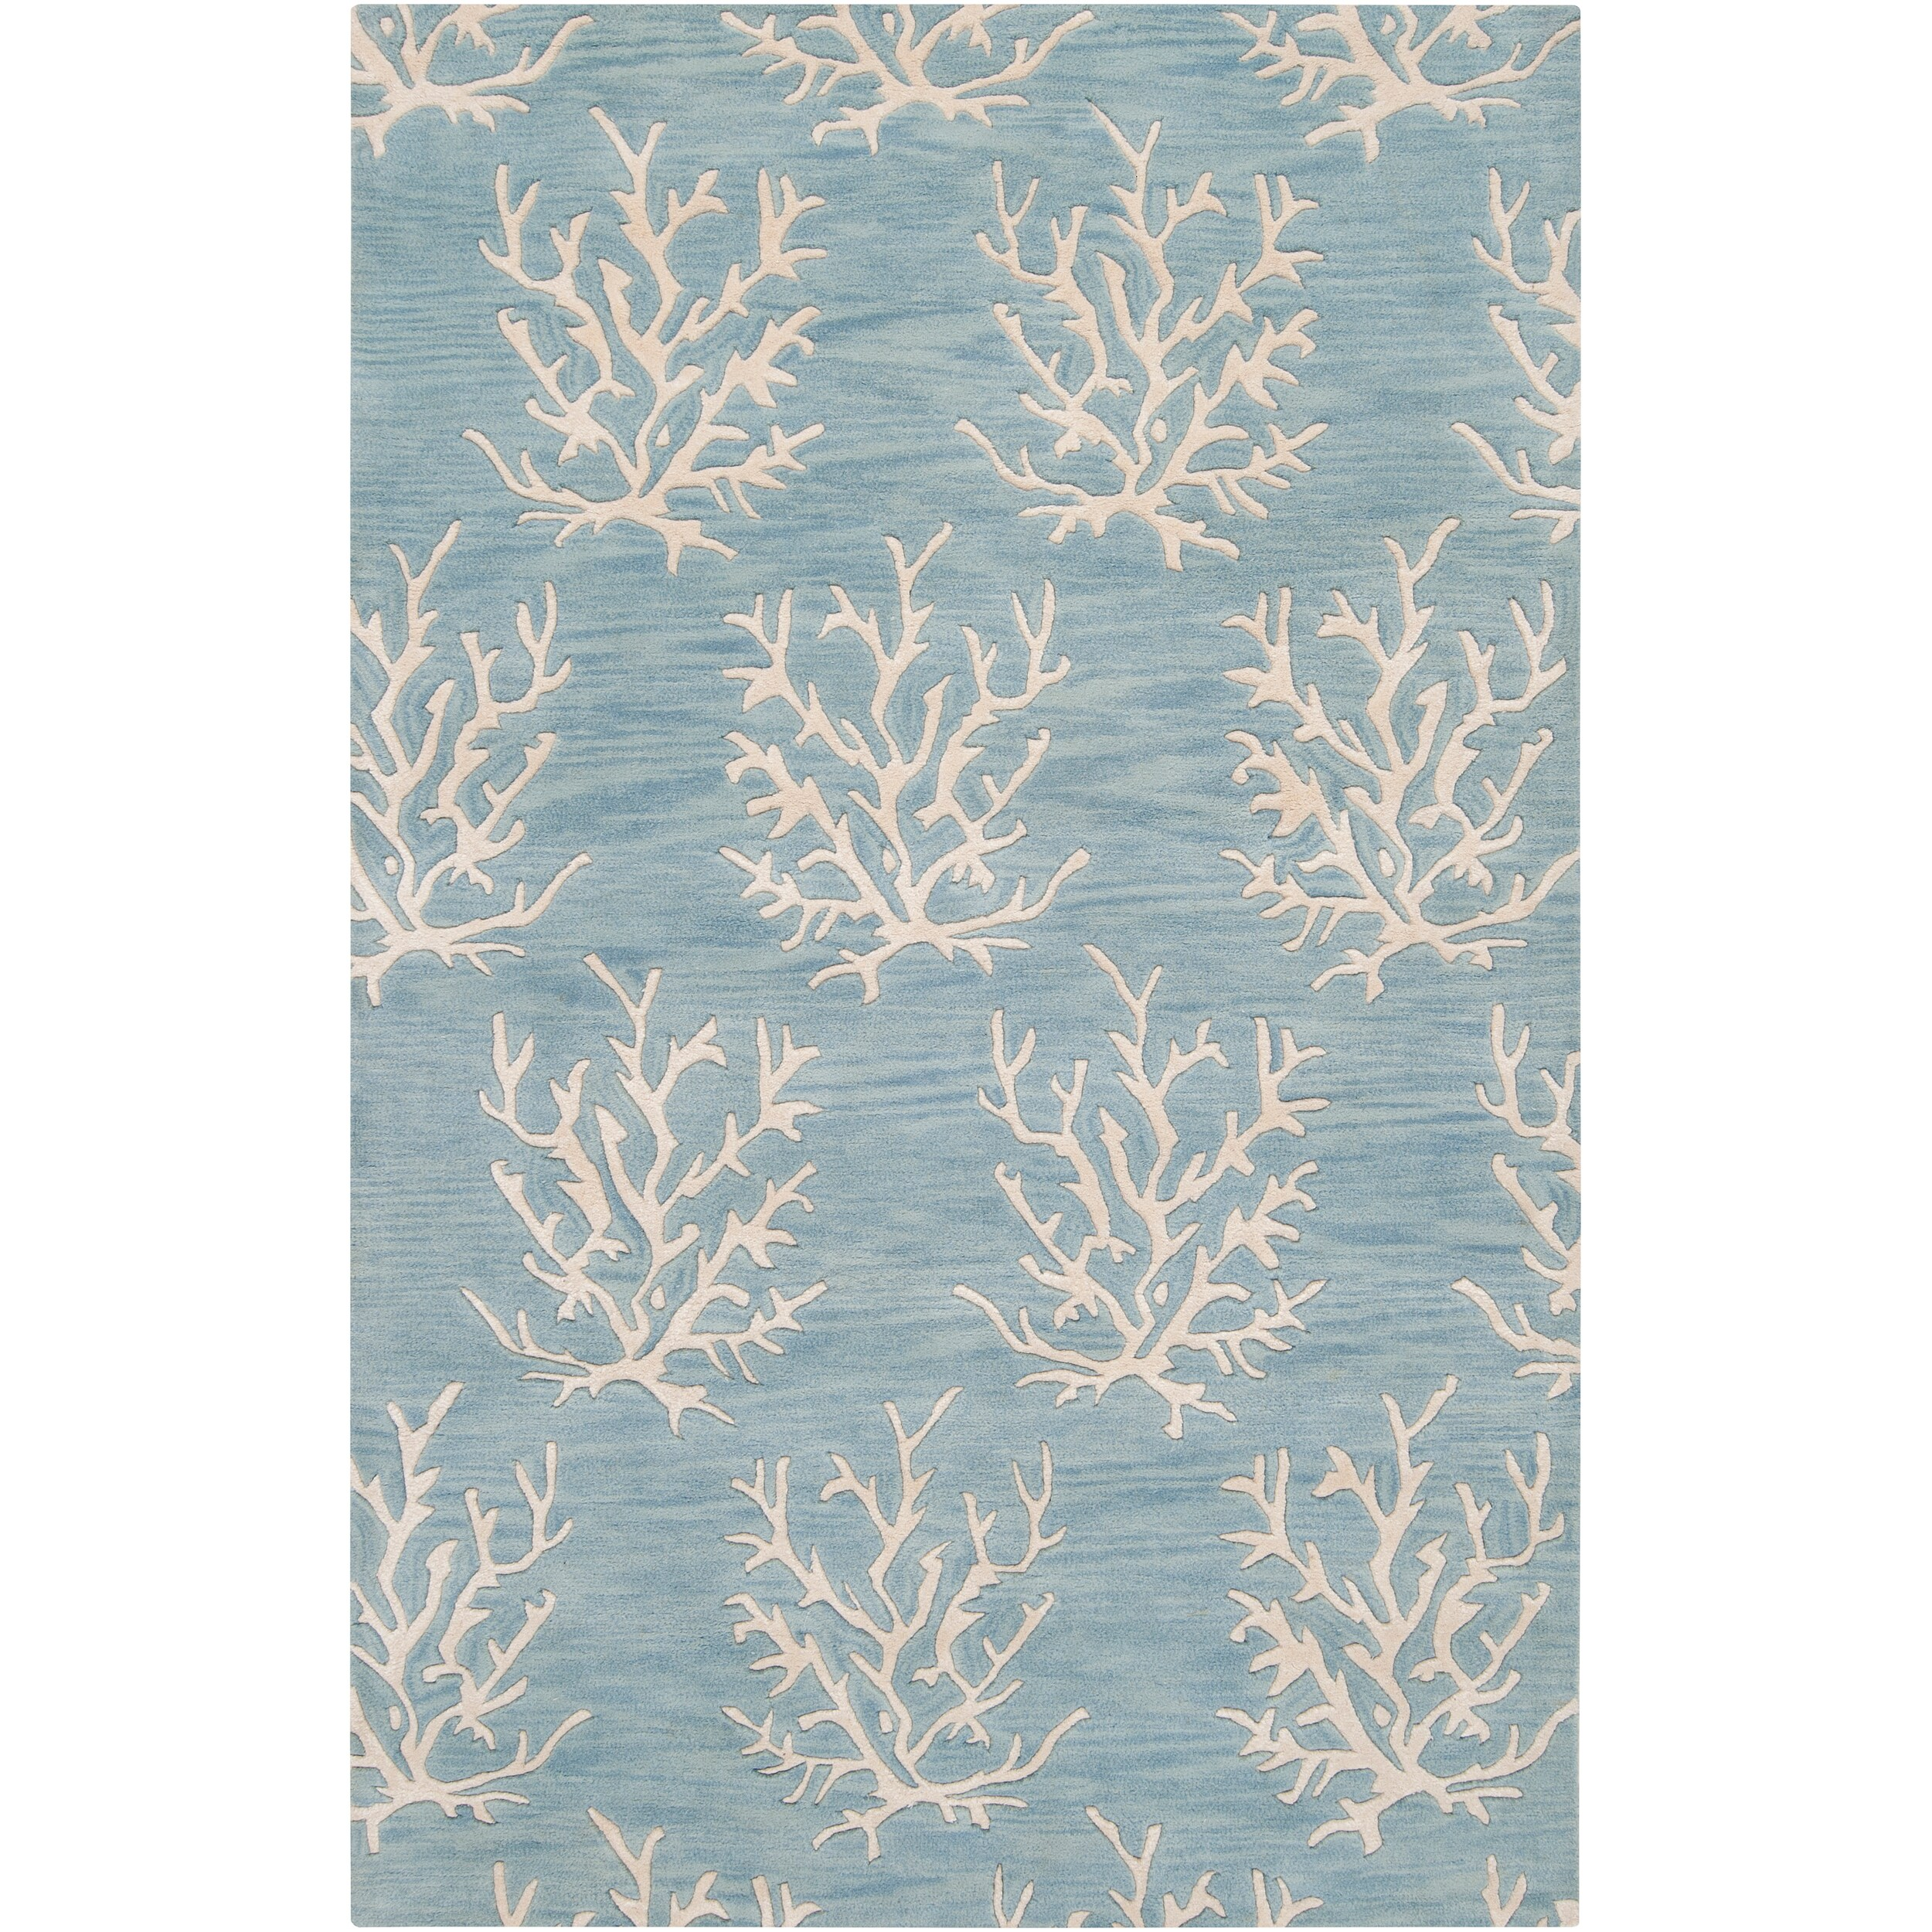 Somerset Bay Hand-Tufted Bacelot Bay Blue Beach-Inspired